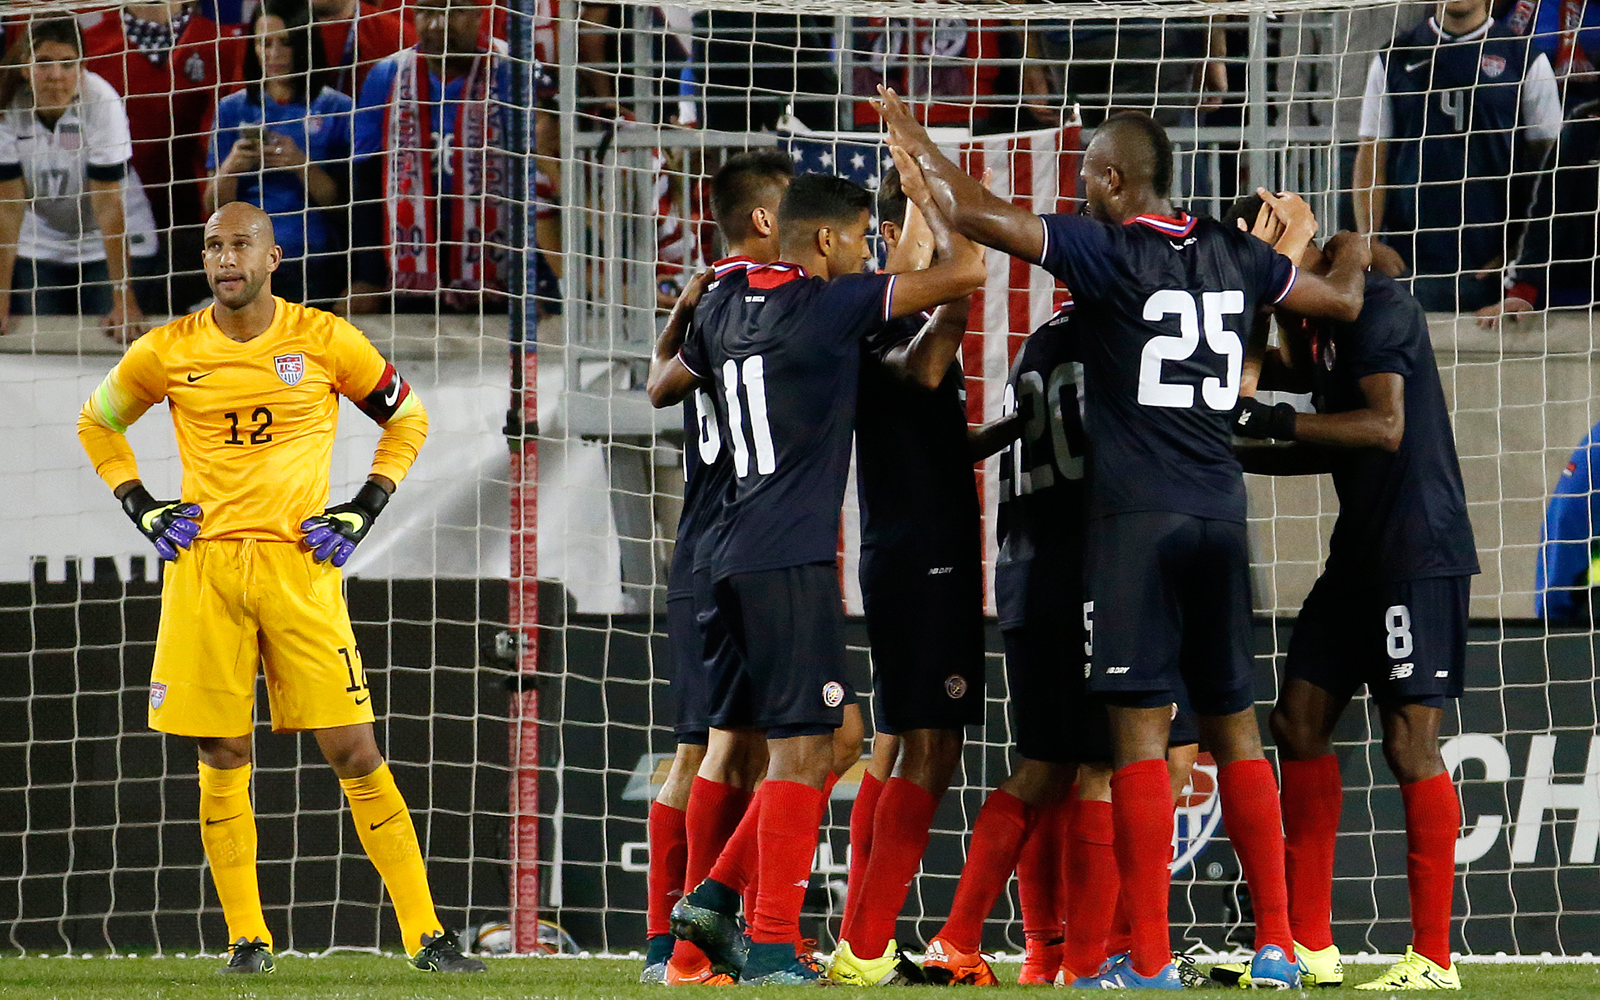 Tim Howard can't watch as Costa Rica players celebrate Joel Campbell's goal in a 1-0 friendly win at Red Bull Arena. The match marked Howard's return to the U.S. goal for the first time since the 2014 World Cup round of 16.